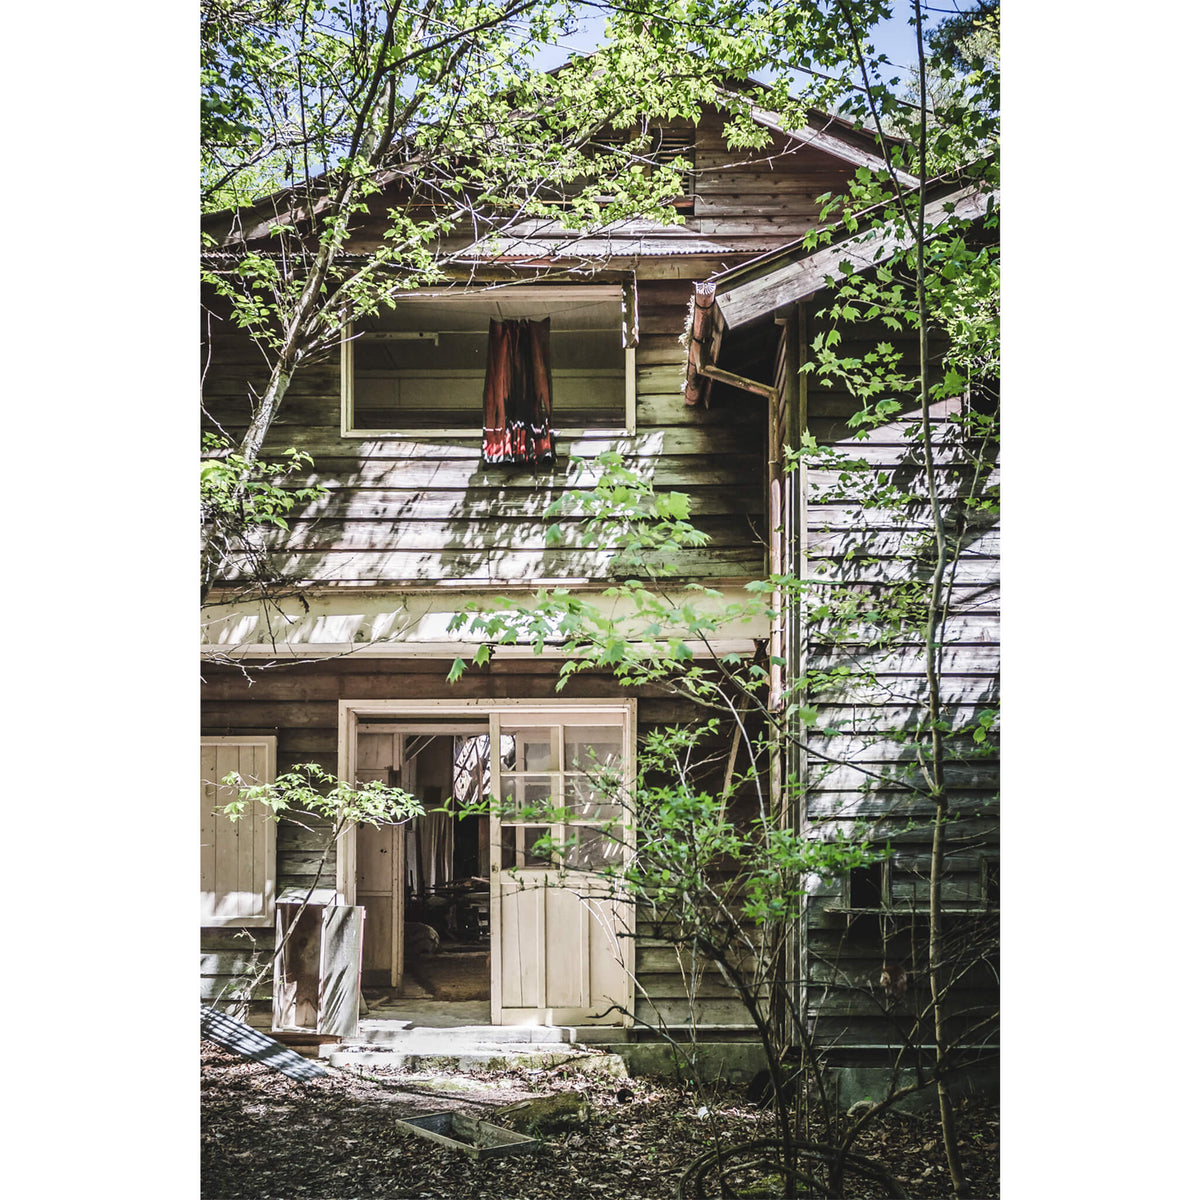 Entrance | Nichitsu Mining Village Fine Art Print - Lost Collective Shop